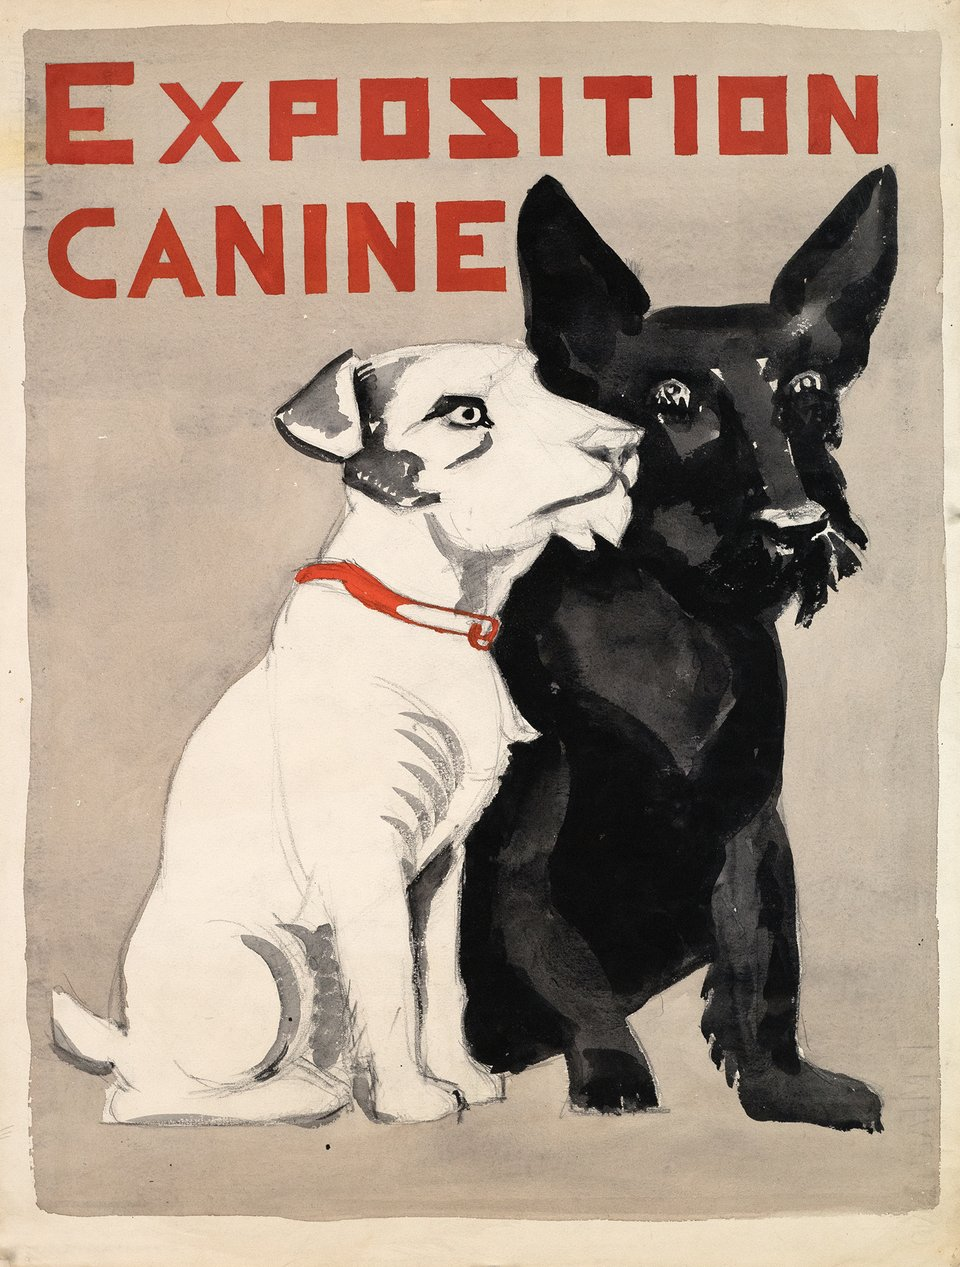 Exposition Canine, Maquette – Vintage poster – ANONYME – 1950